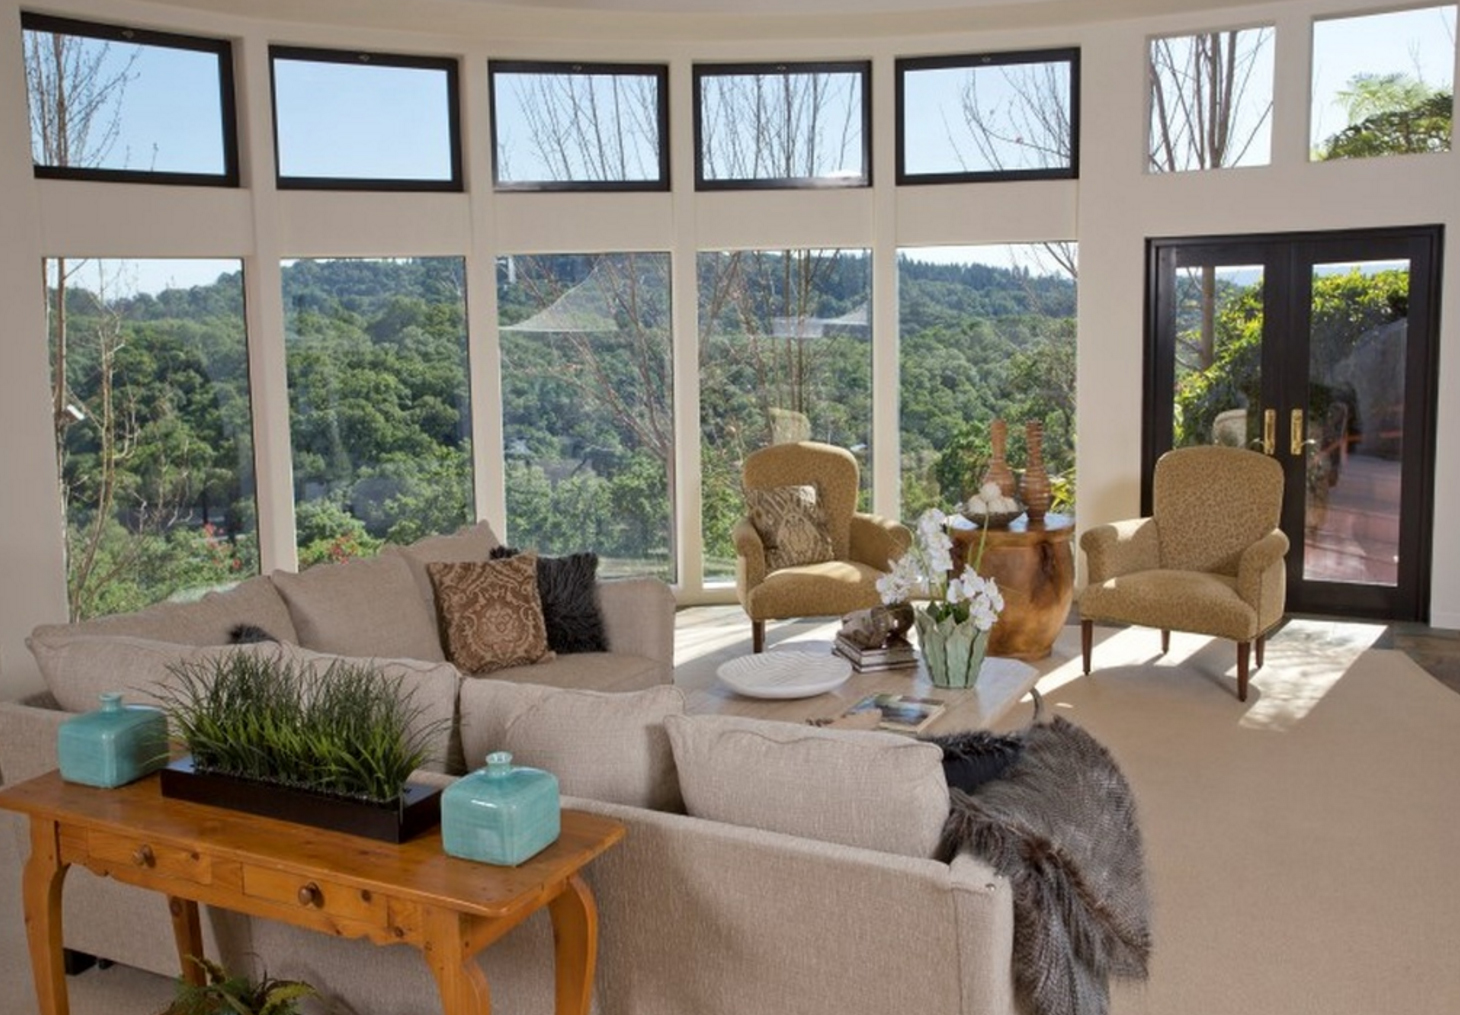 stunning pueblo style home in santa rosa on the market for 3 2m living room view